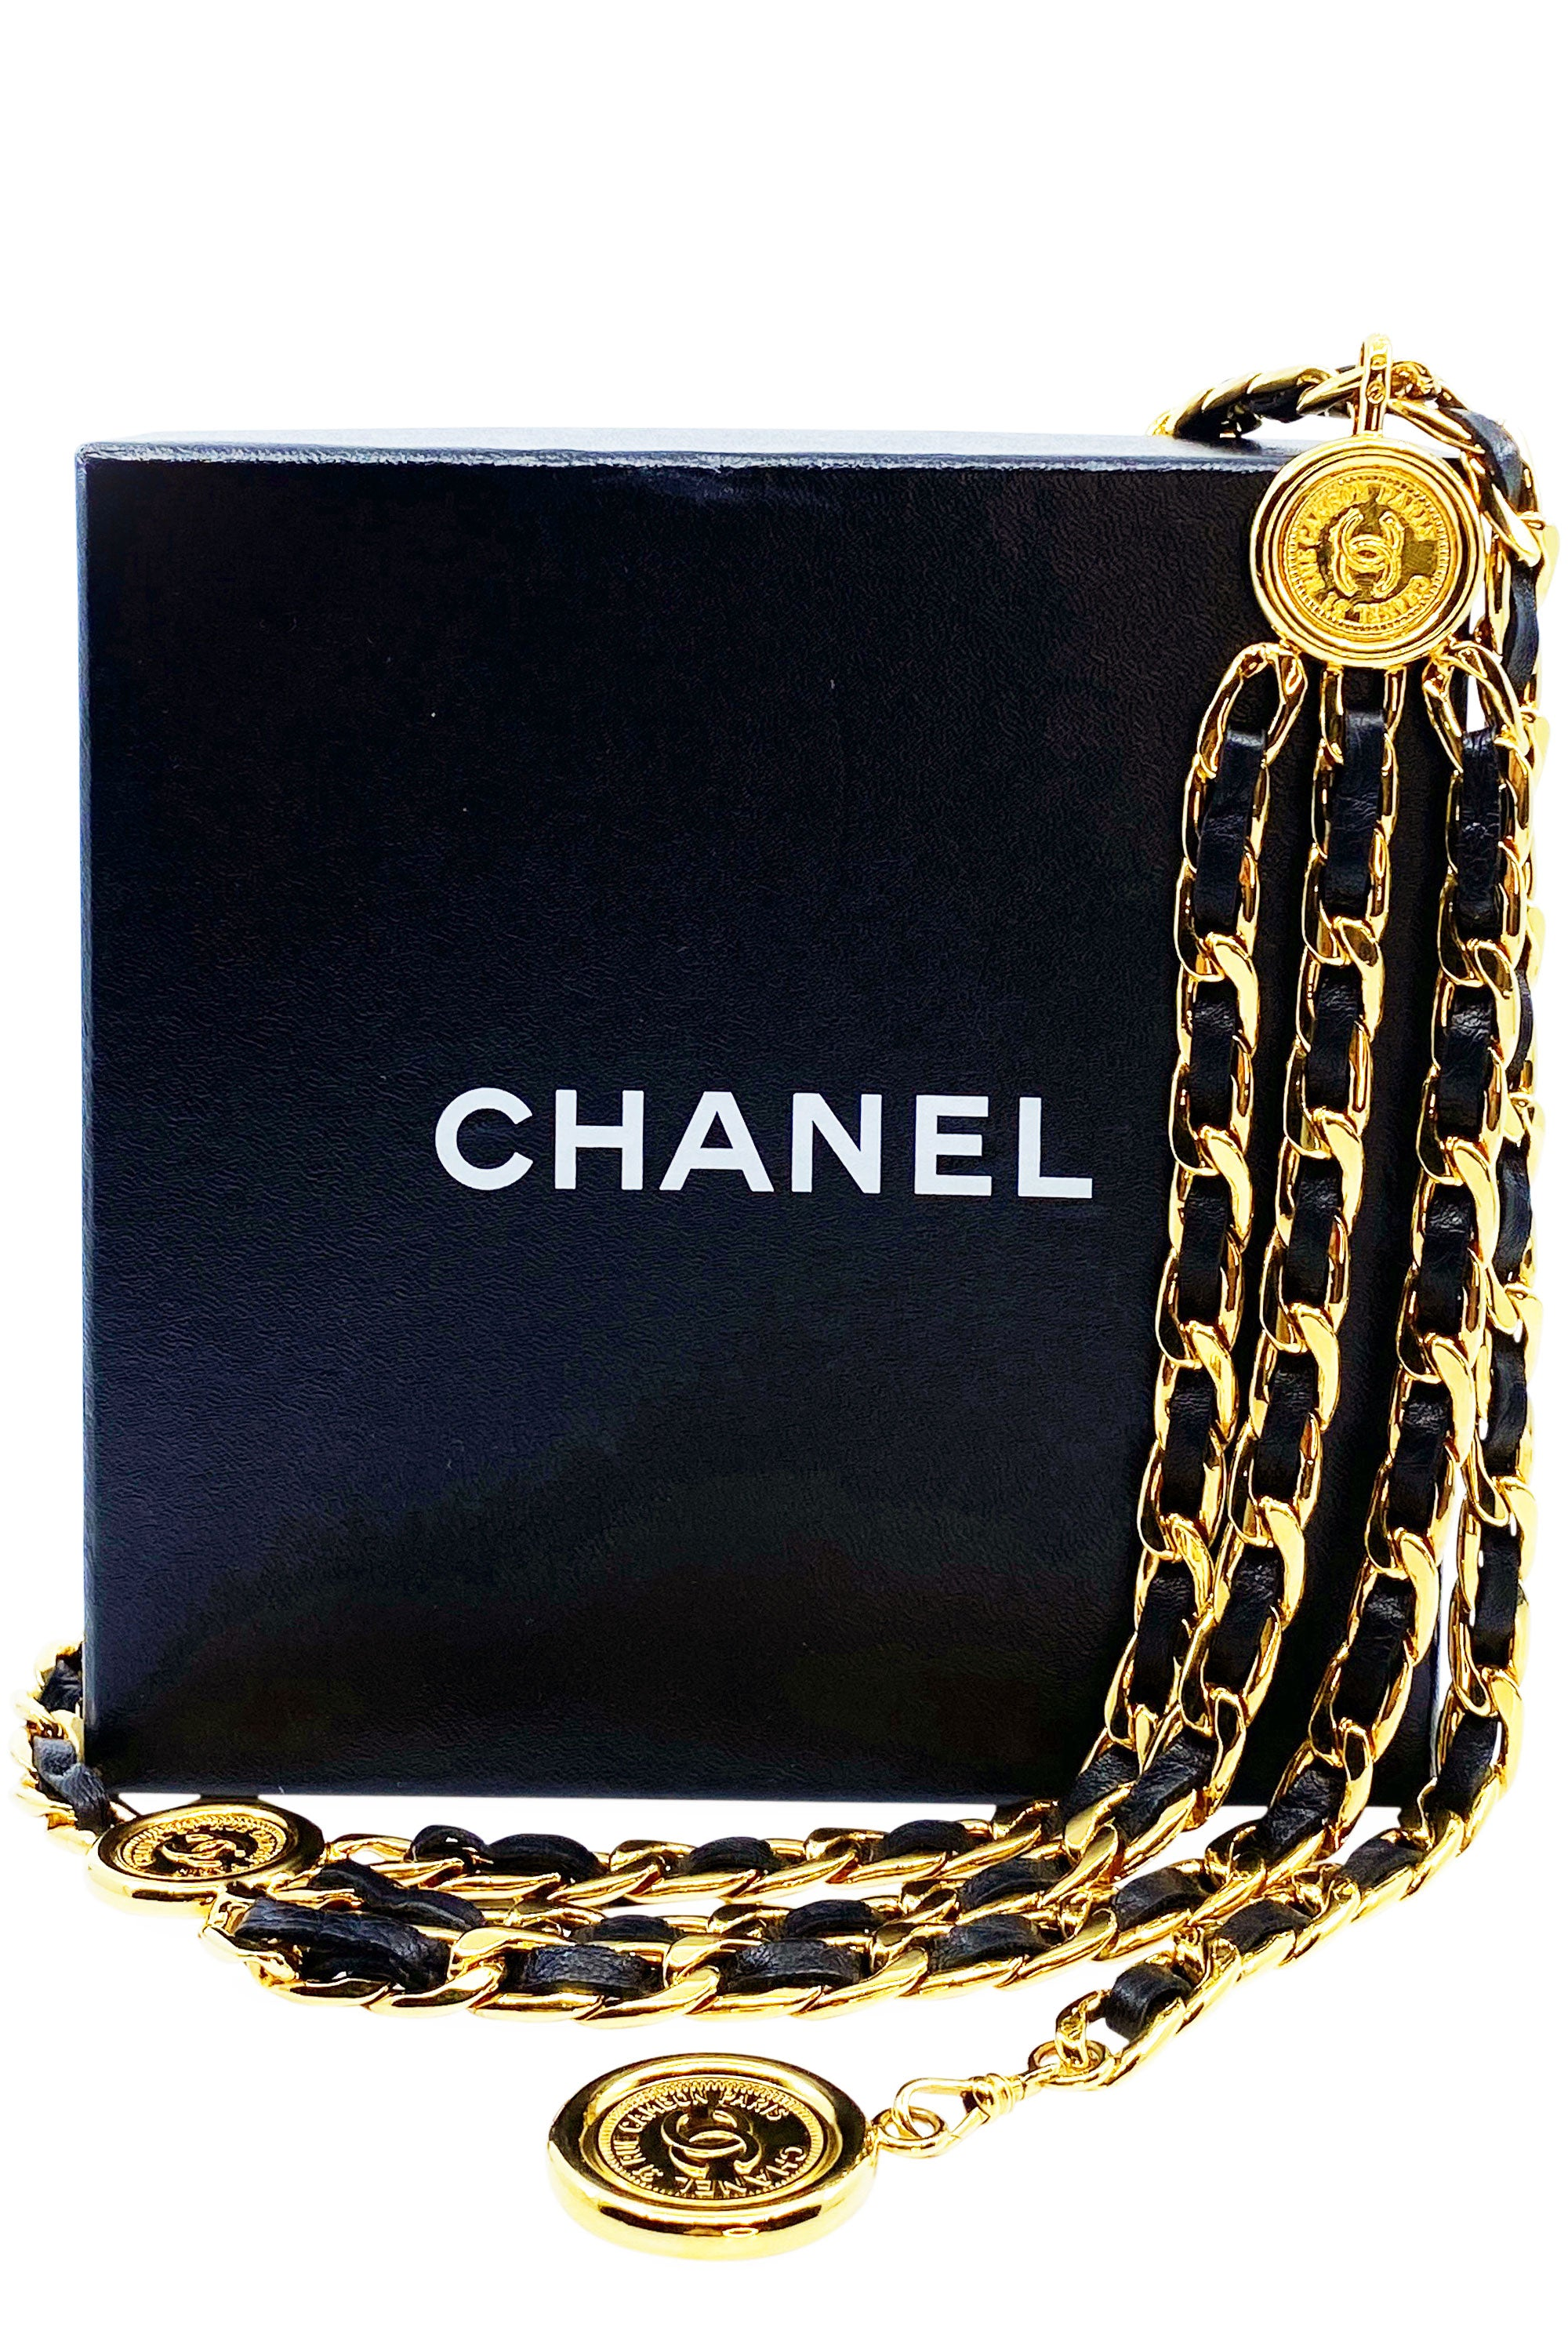 CHANEL Vintage Belt Chain